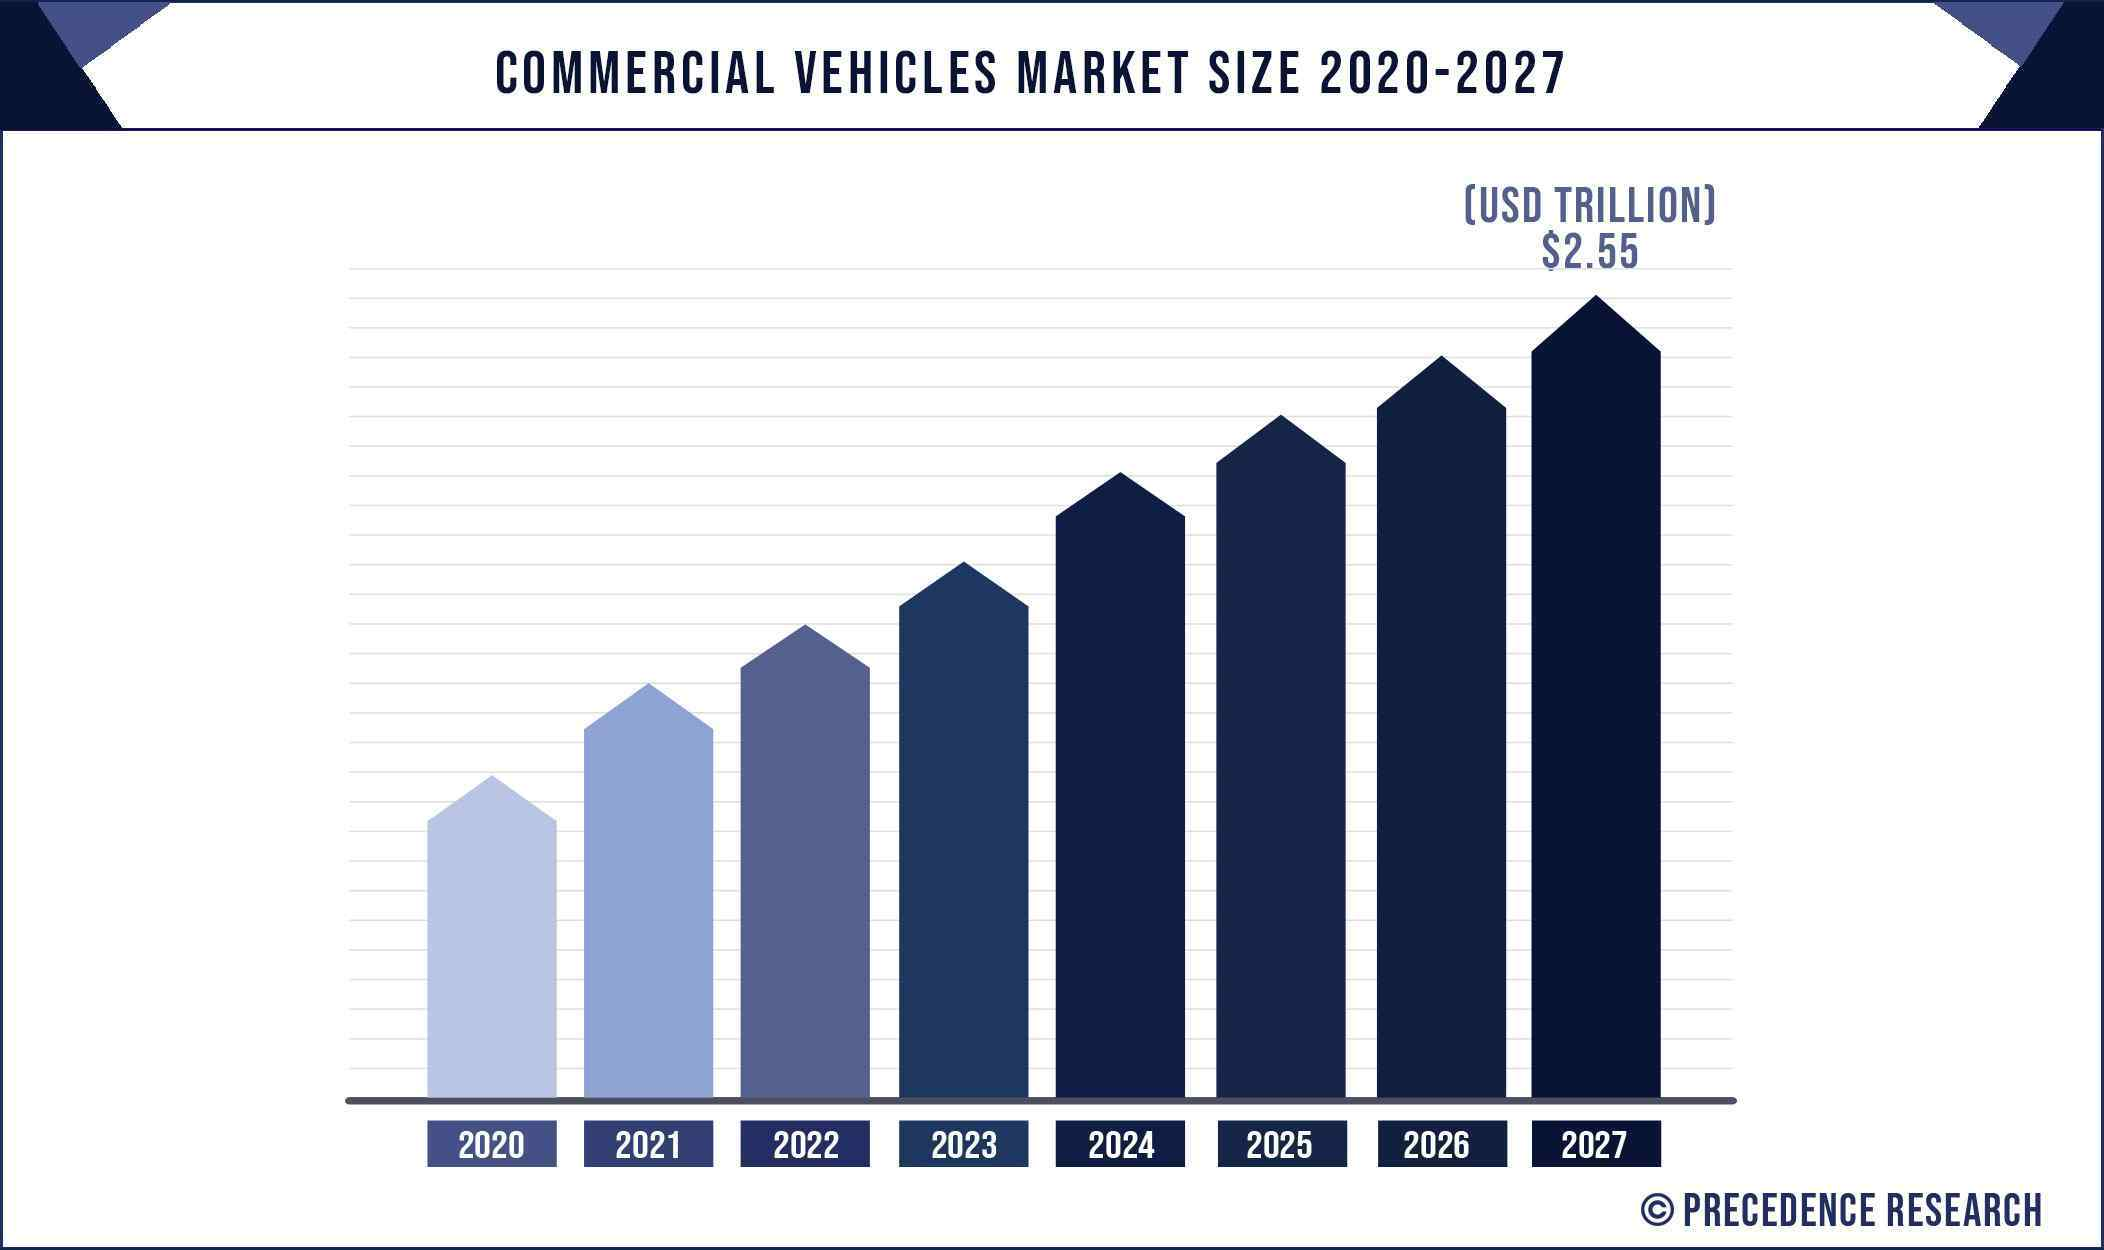 Commercial Vehicles Market Size 2020 to 2027